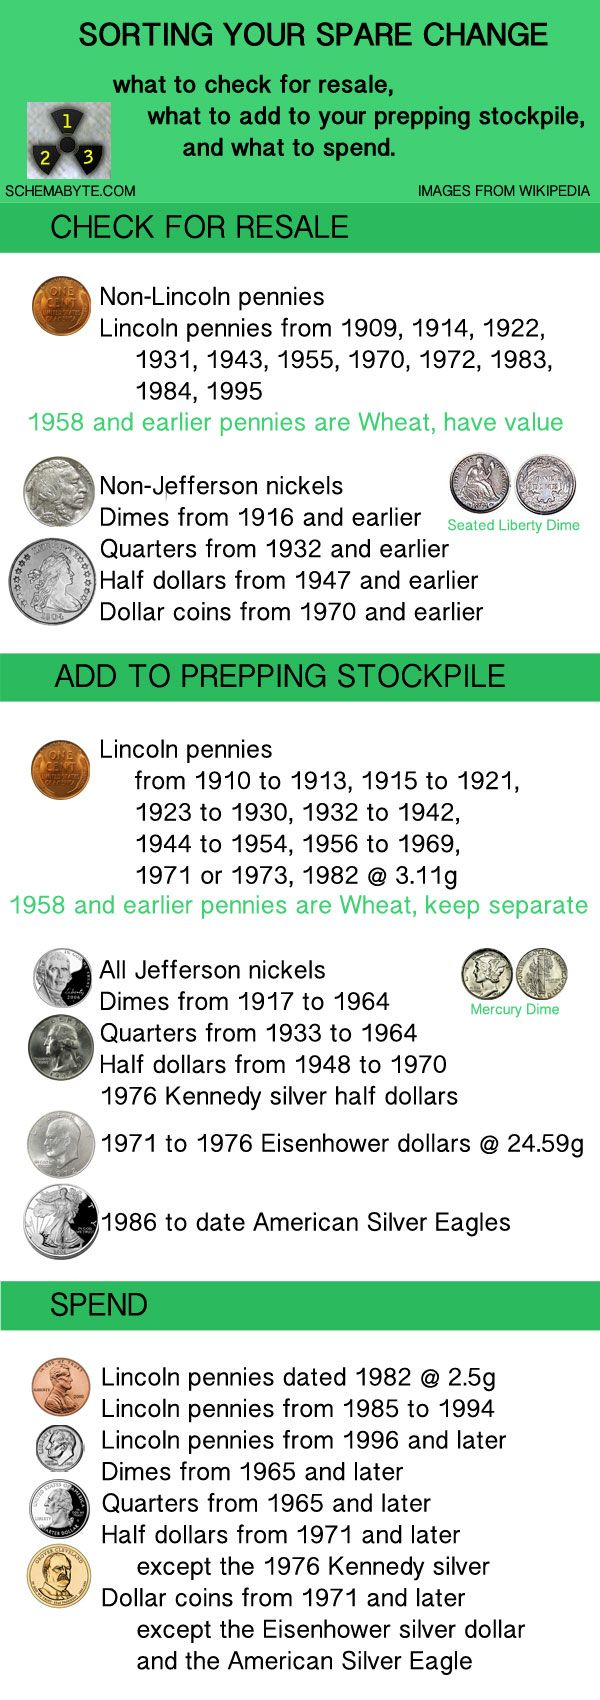 Handling your change. Each year, the United States Mint makes between 14 billion and 20 billion circulating coins.